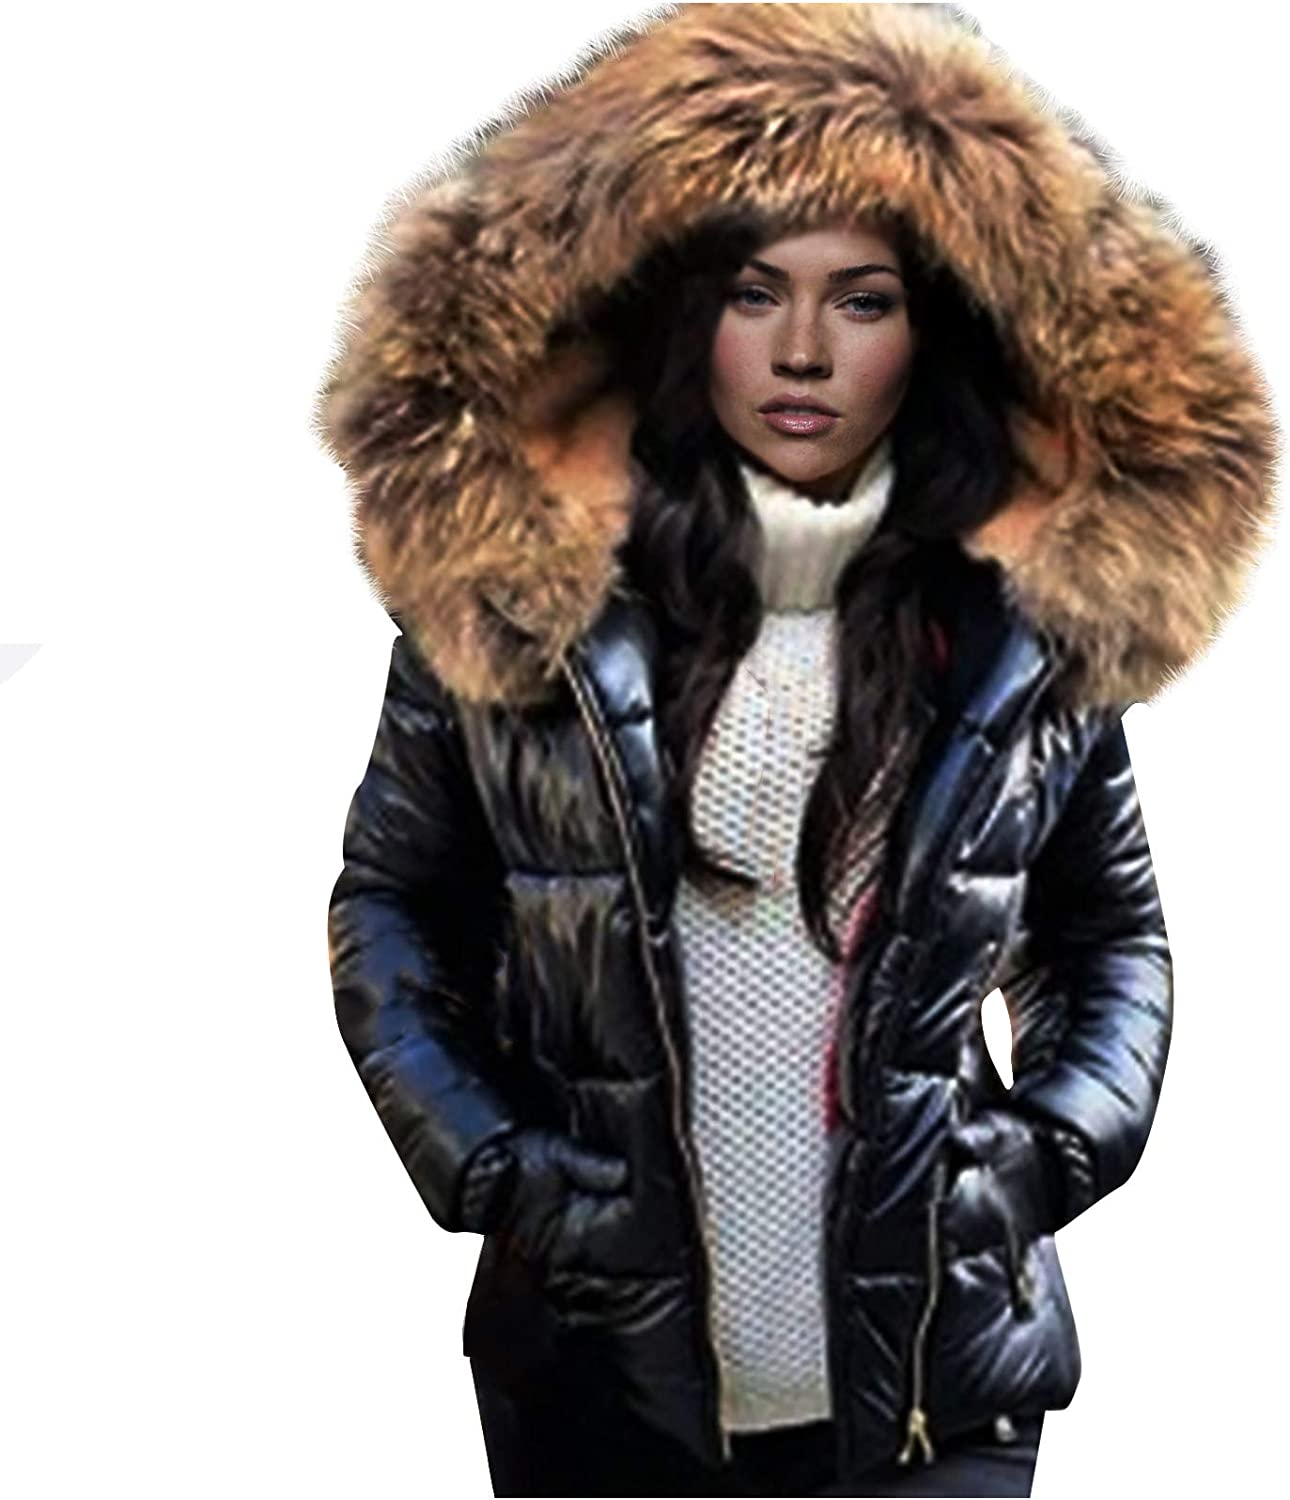 Gwewei4df Women's Winter Max 56% OFF Many popular brands Smooth Jacket Zipper Warm Front